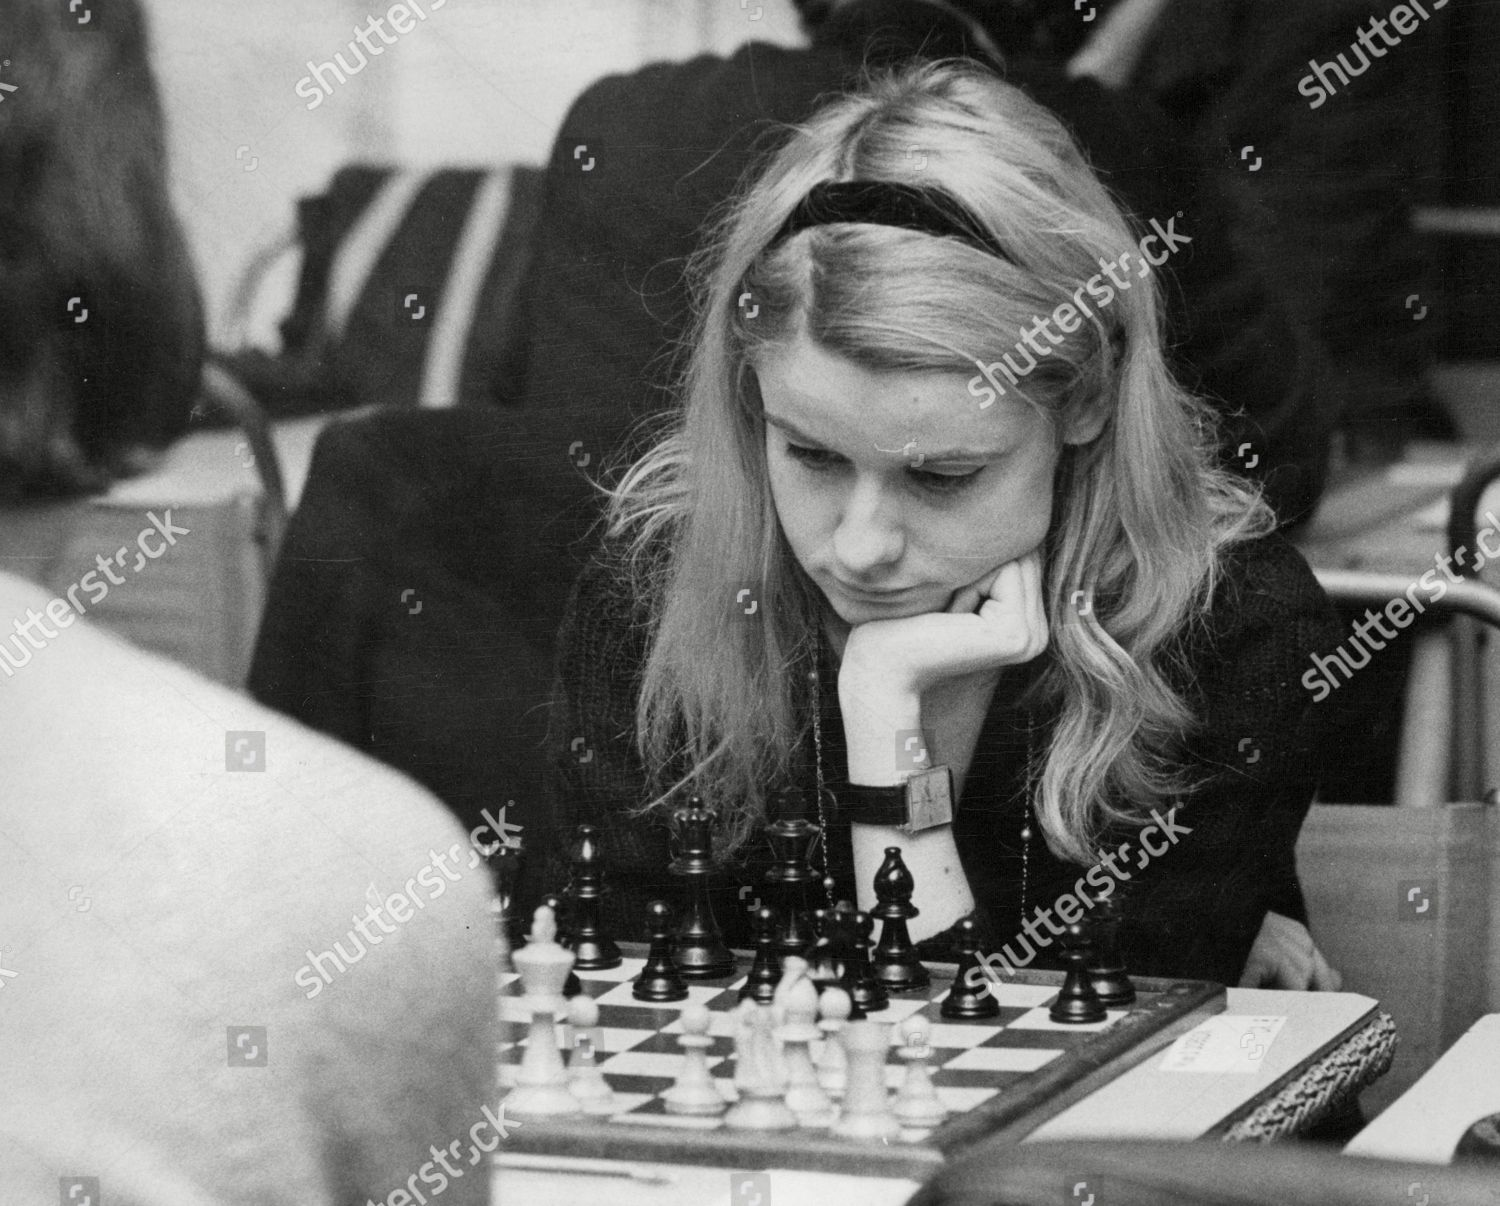 Dinah Dobson 22-year-old Champion British Chess Player Deep In Thought During Chess Competition In Hastings. Mandatory Credit: Photo by ANL/Shutterstock